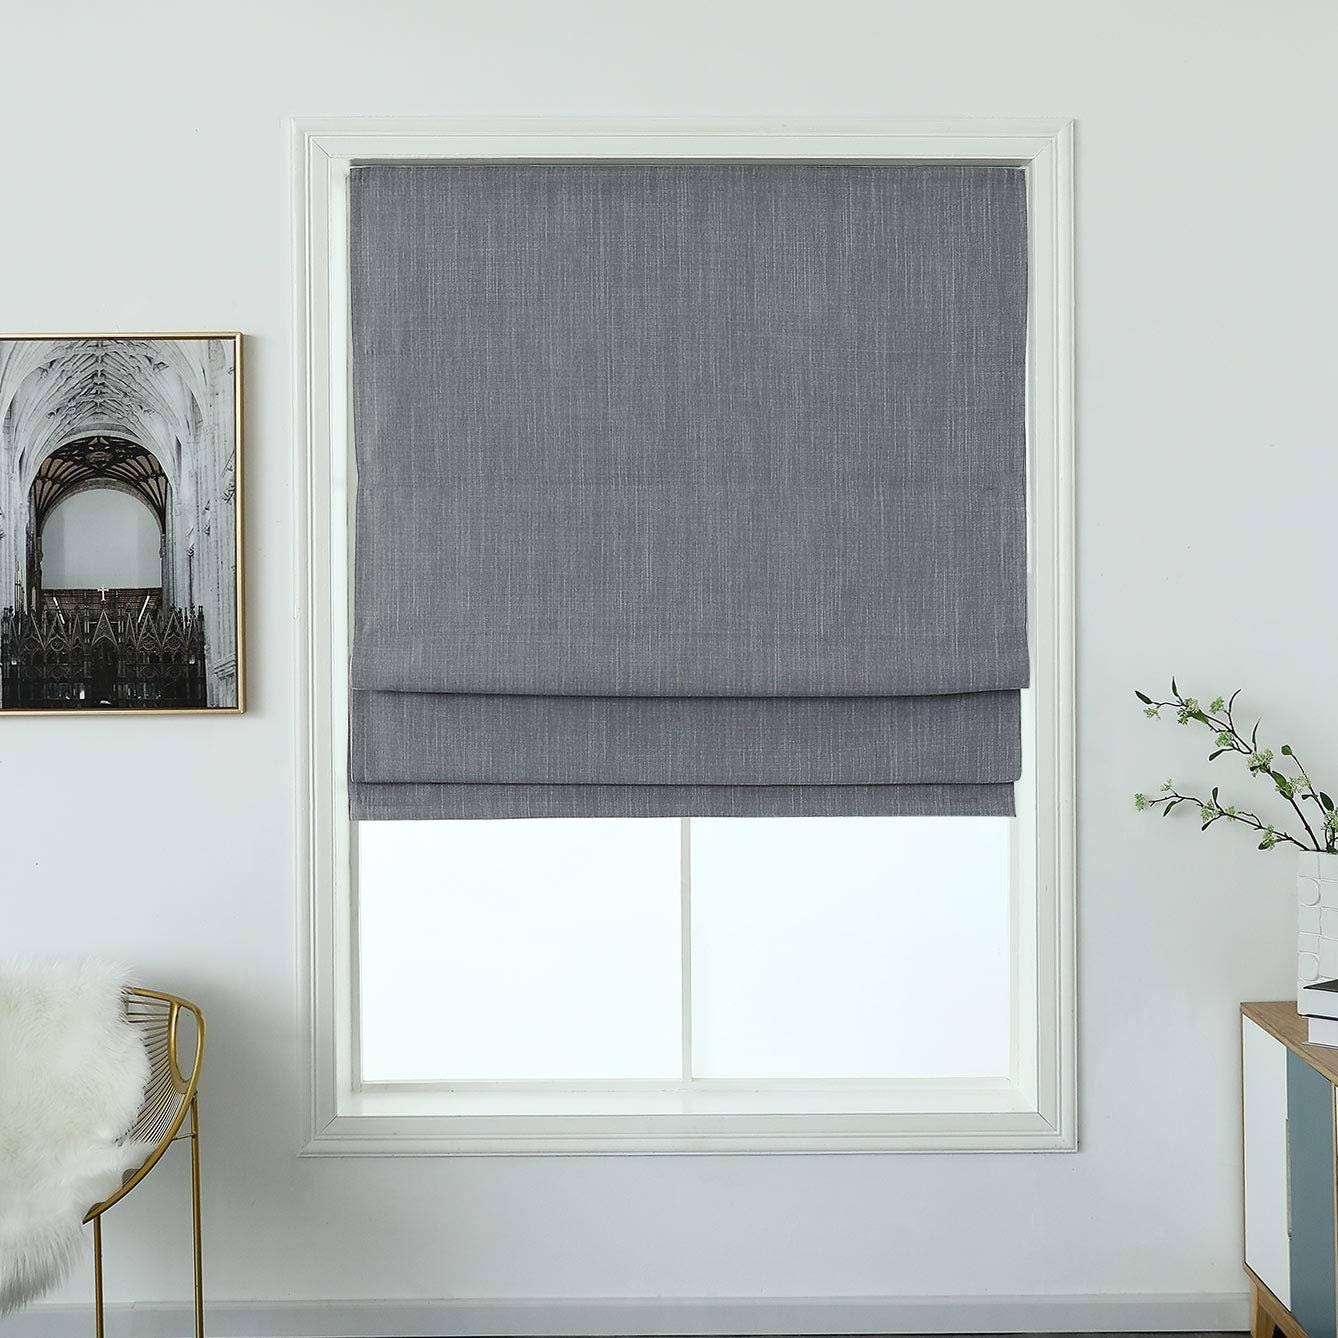 "Cordless Woven Blackout Roman Shade with Modren Cotton Denim Look, Privacy Material Window Roller Blind, (Earl Grey 36"" W X 64"" H)"